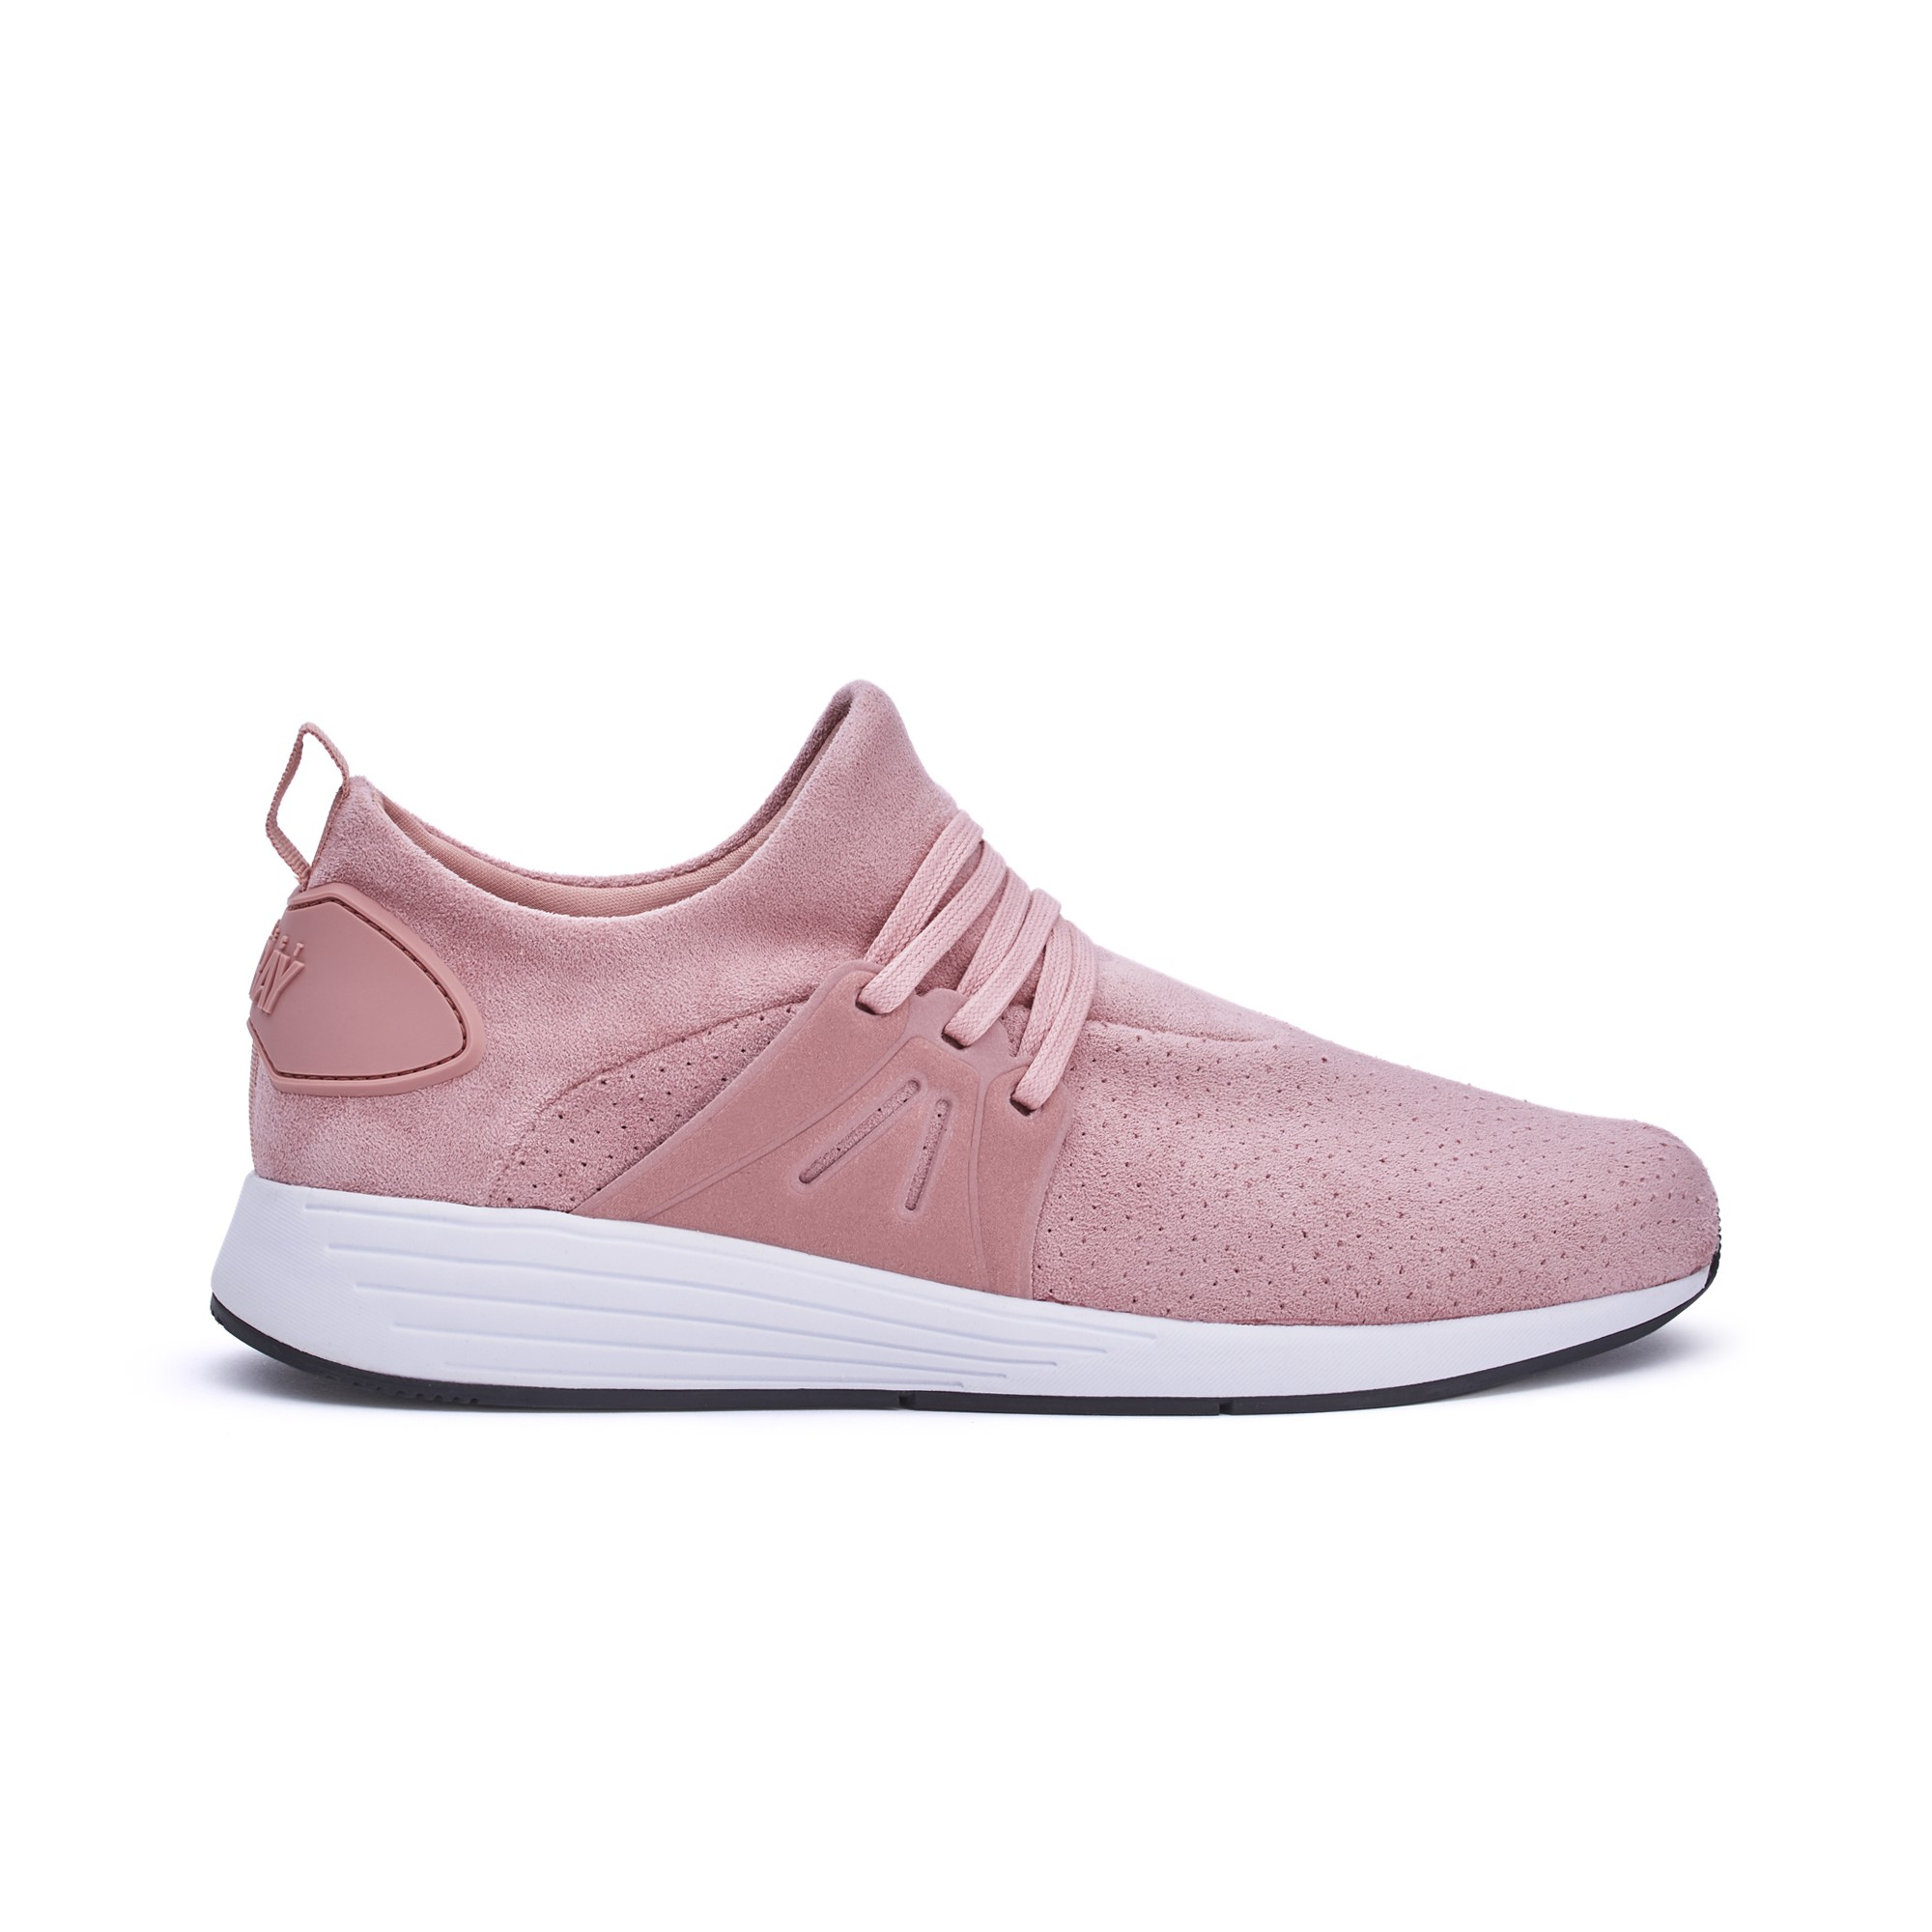 Delray DELRAY (5207) DUSTY PINK/WHITE